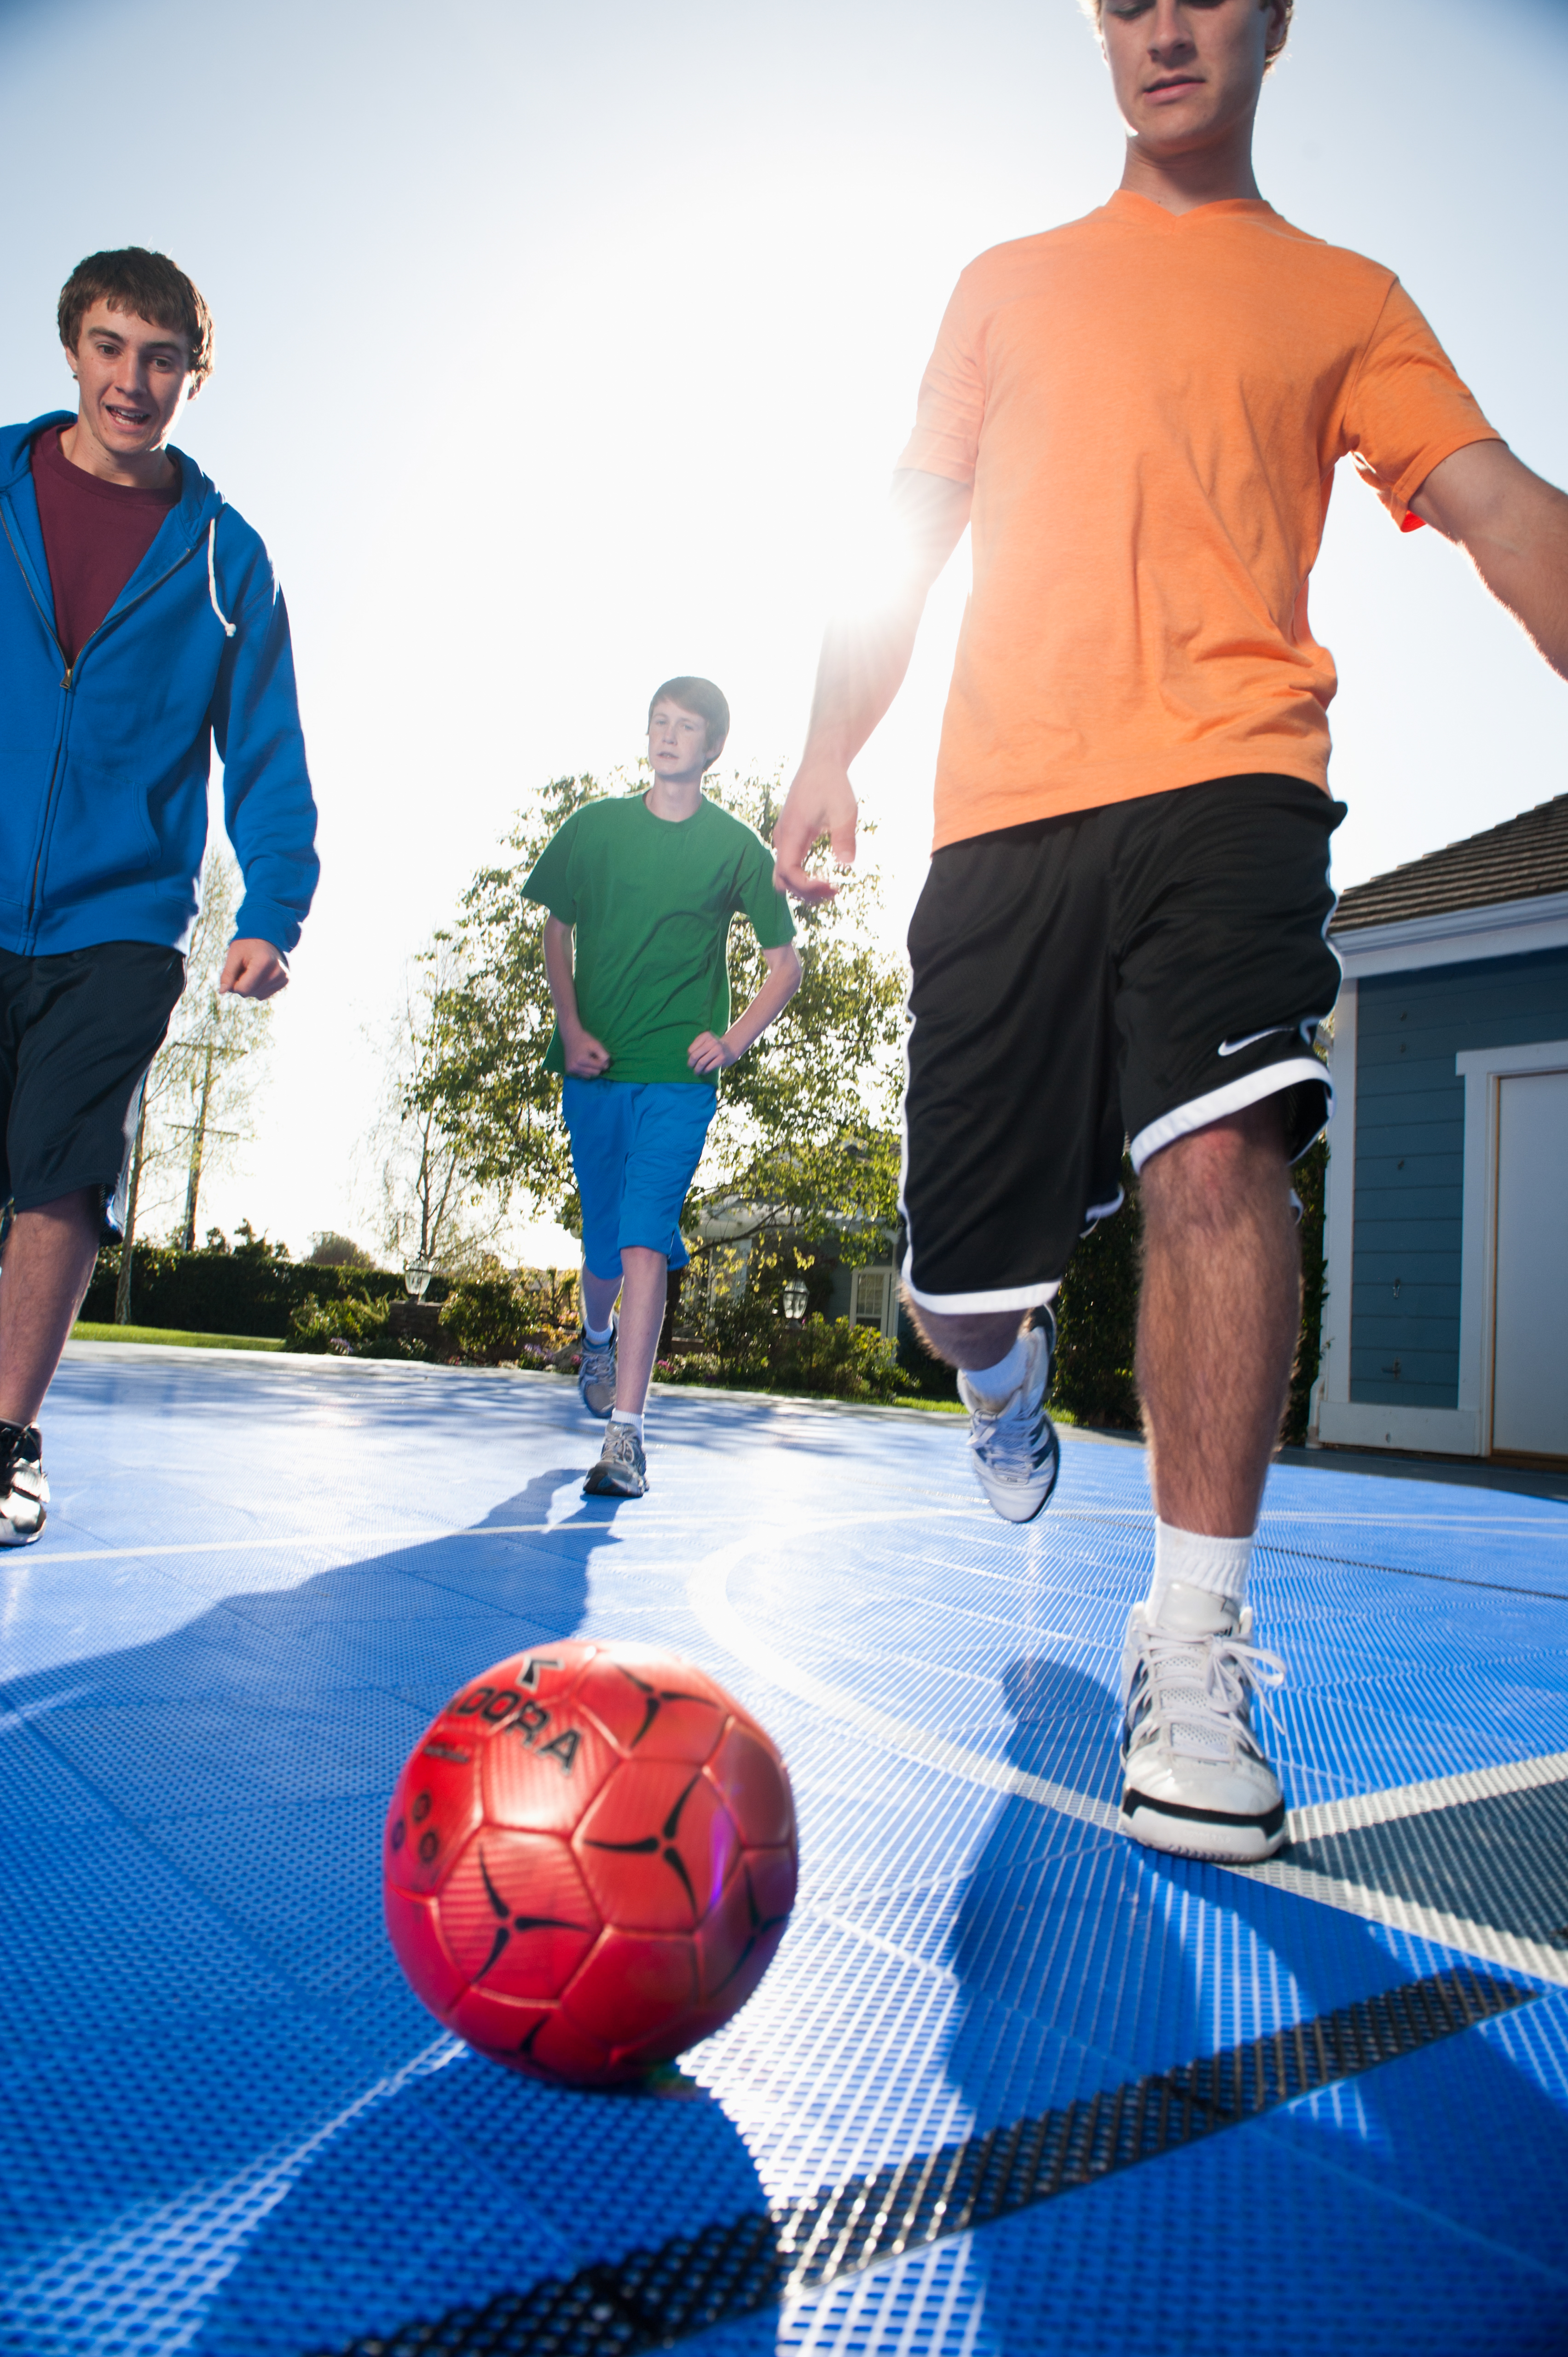 Ways to Improve Your Soccer Skills